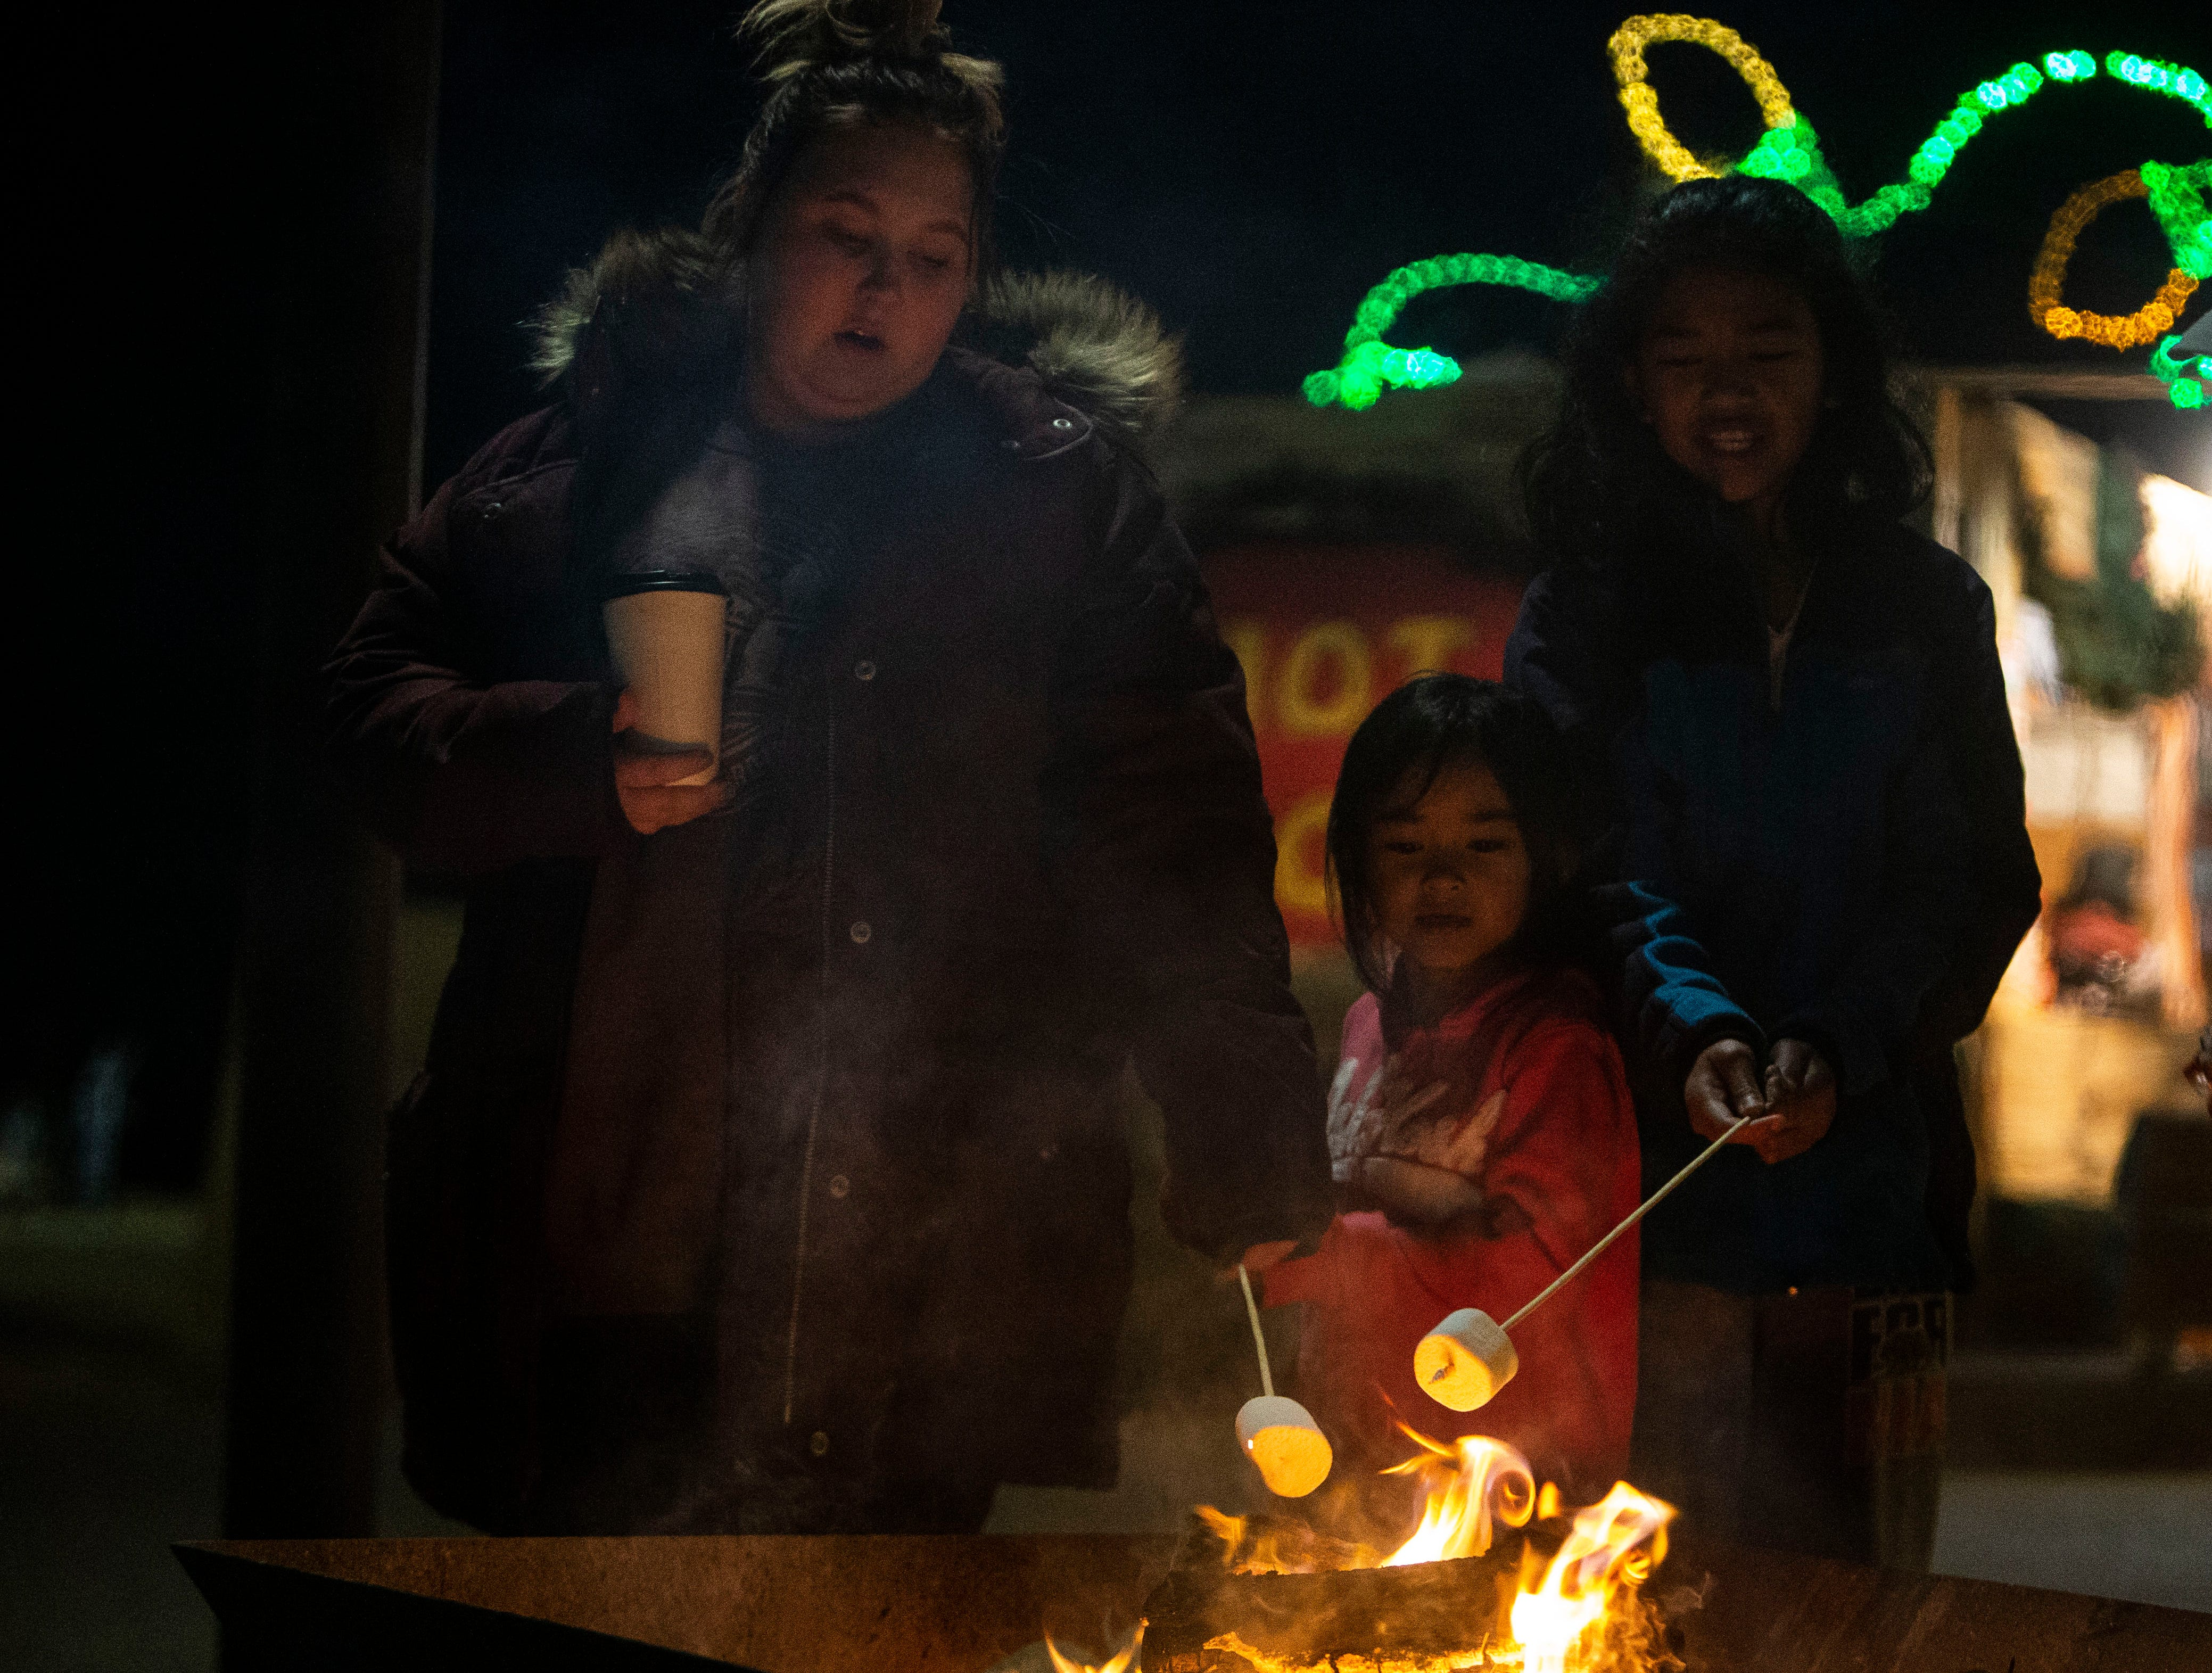 Kaitlyn Waldo, Angelina Liv and Arlenna Siv roast marshmallows at Starry Nights, annual drive-through light display at Shelby Farms, Tuesday, Dec. 11, 2018.